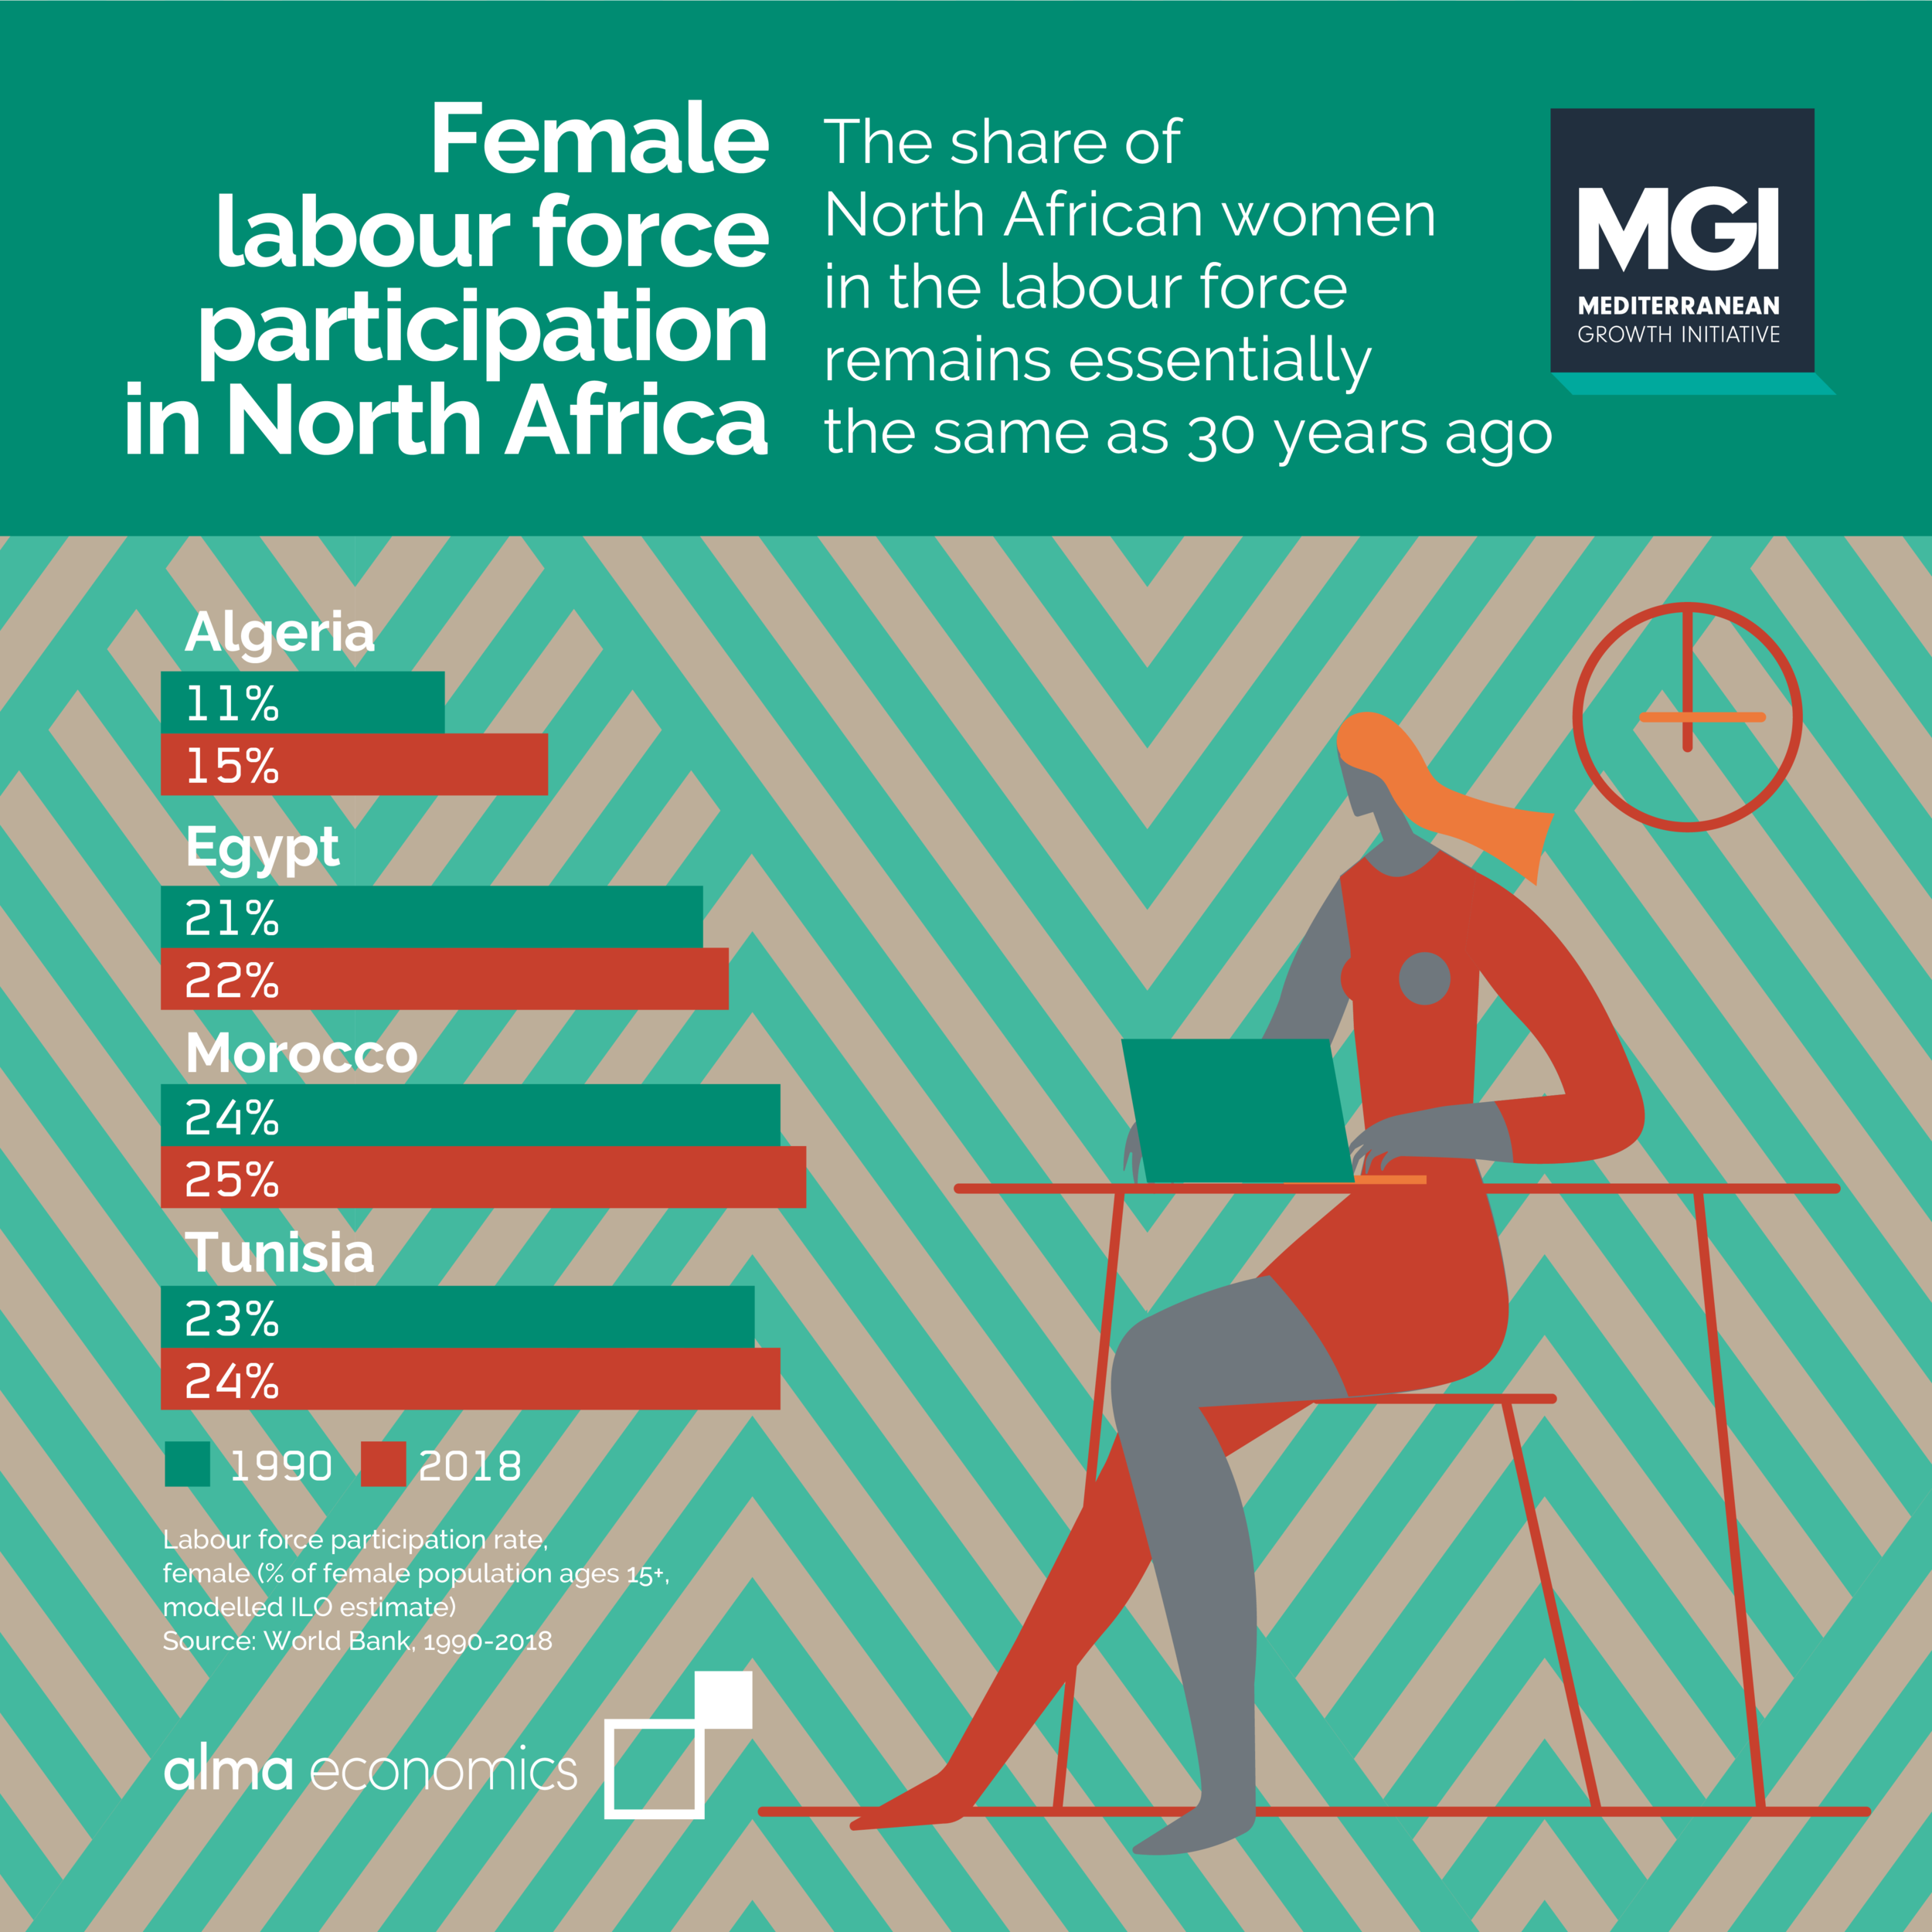 Female labour force participation in North Africa - The share of North African women in the labour force remains essentially the same as 30 years ago